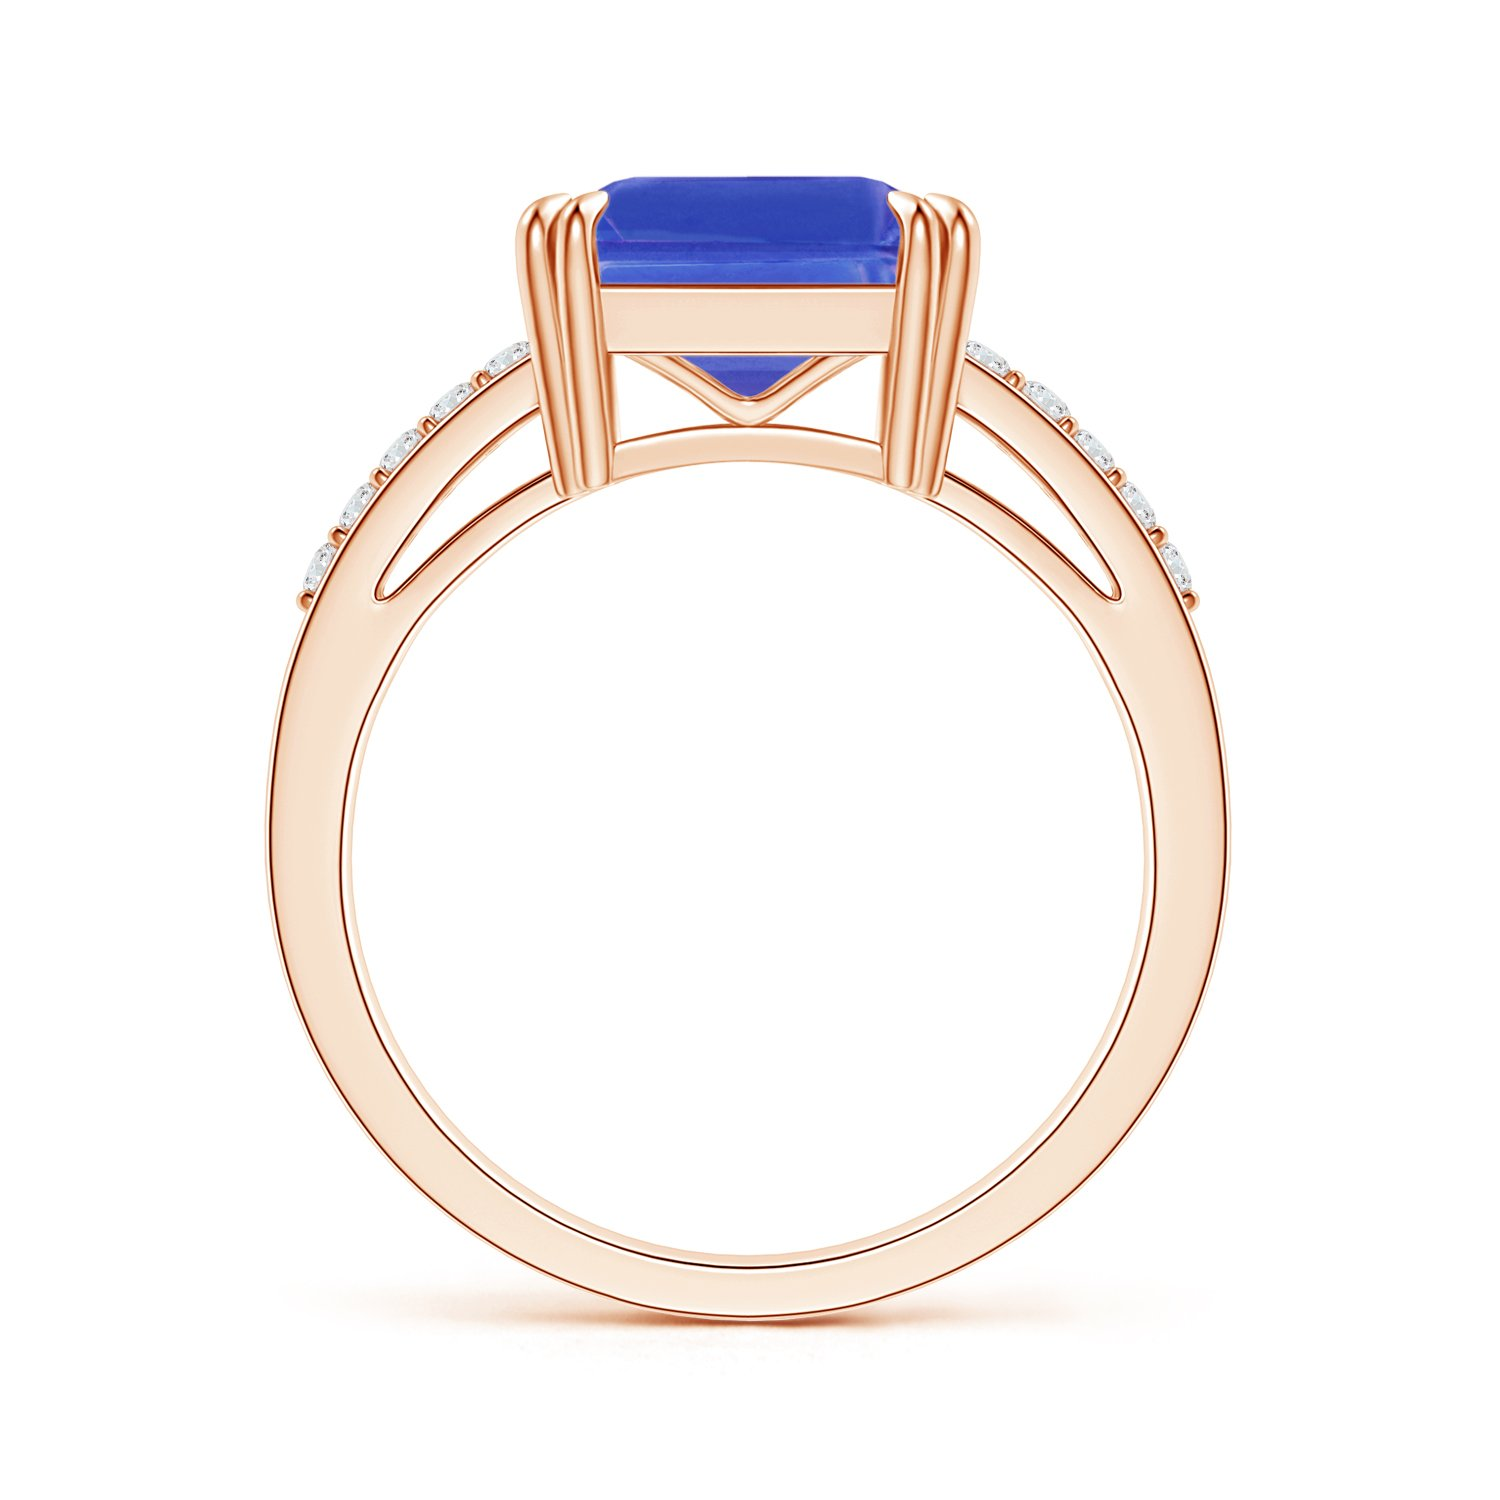 Holiday Offer - December Birthstone - Claw Set Emerald Cut Tanzanite Ring for Women with Diamond Accents in 14K Rose Gold (9mm Tanzanite) by Angara.com (Image #2)